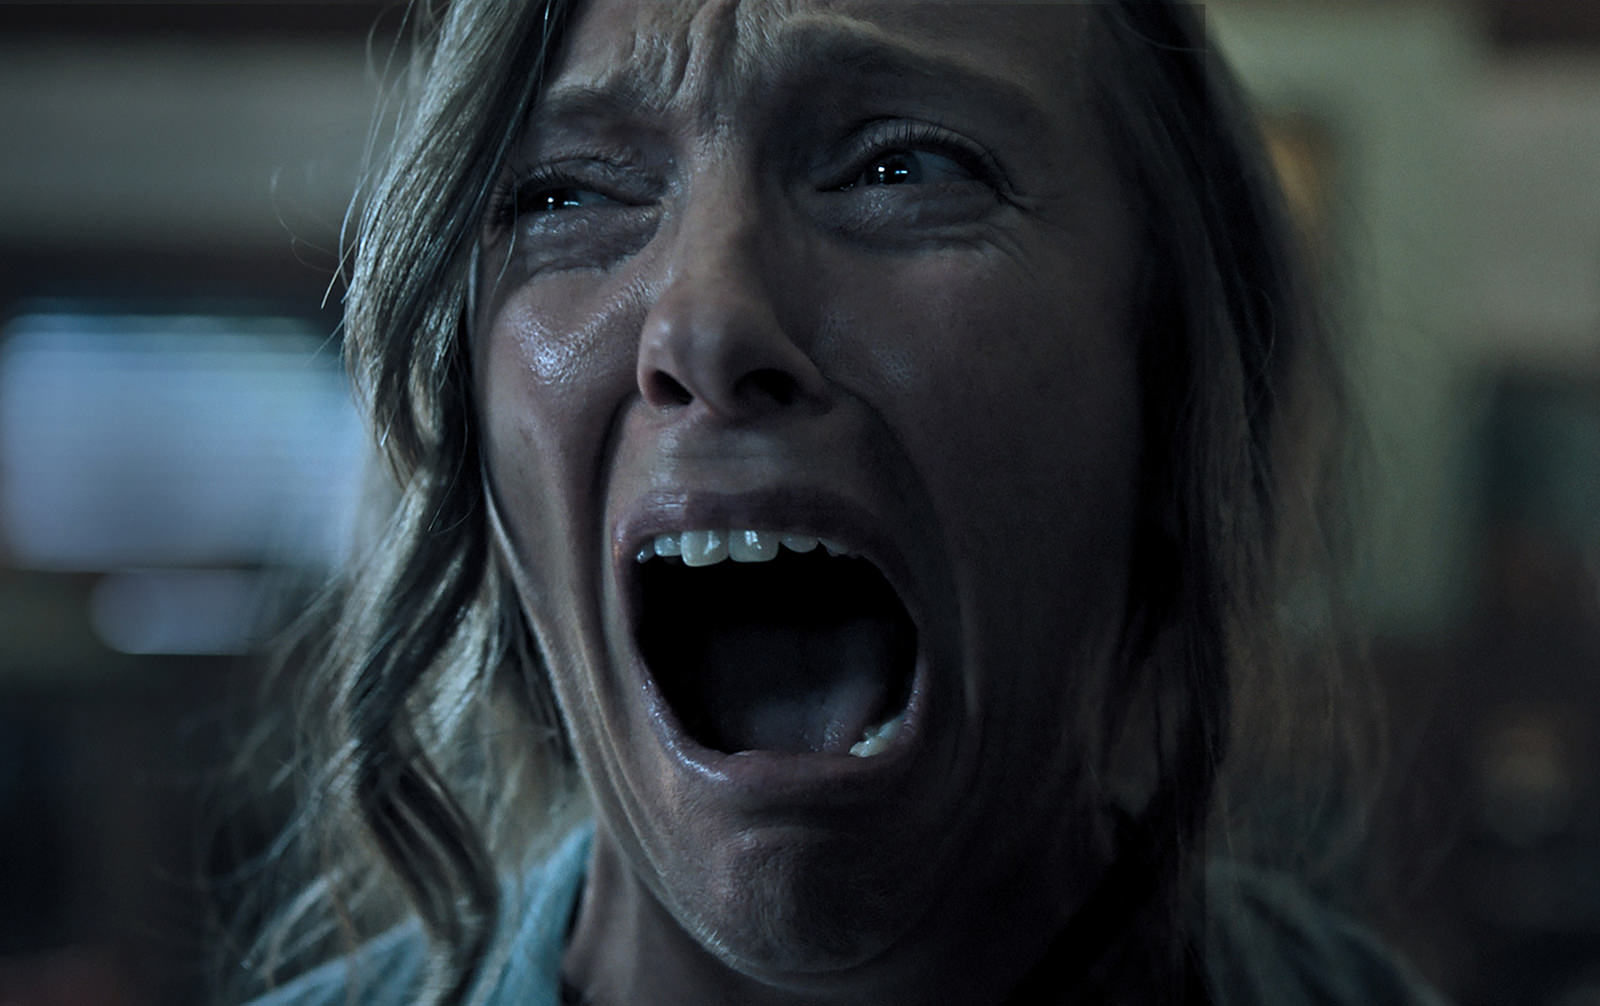 002009_moviereview_hereditary_topslider_pc